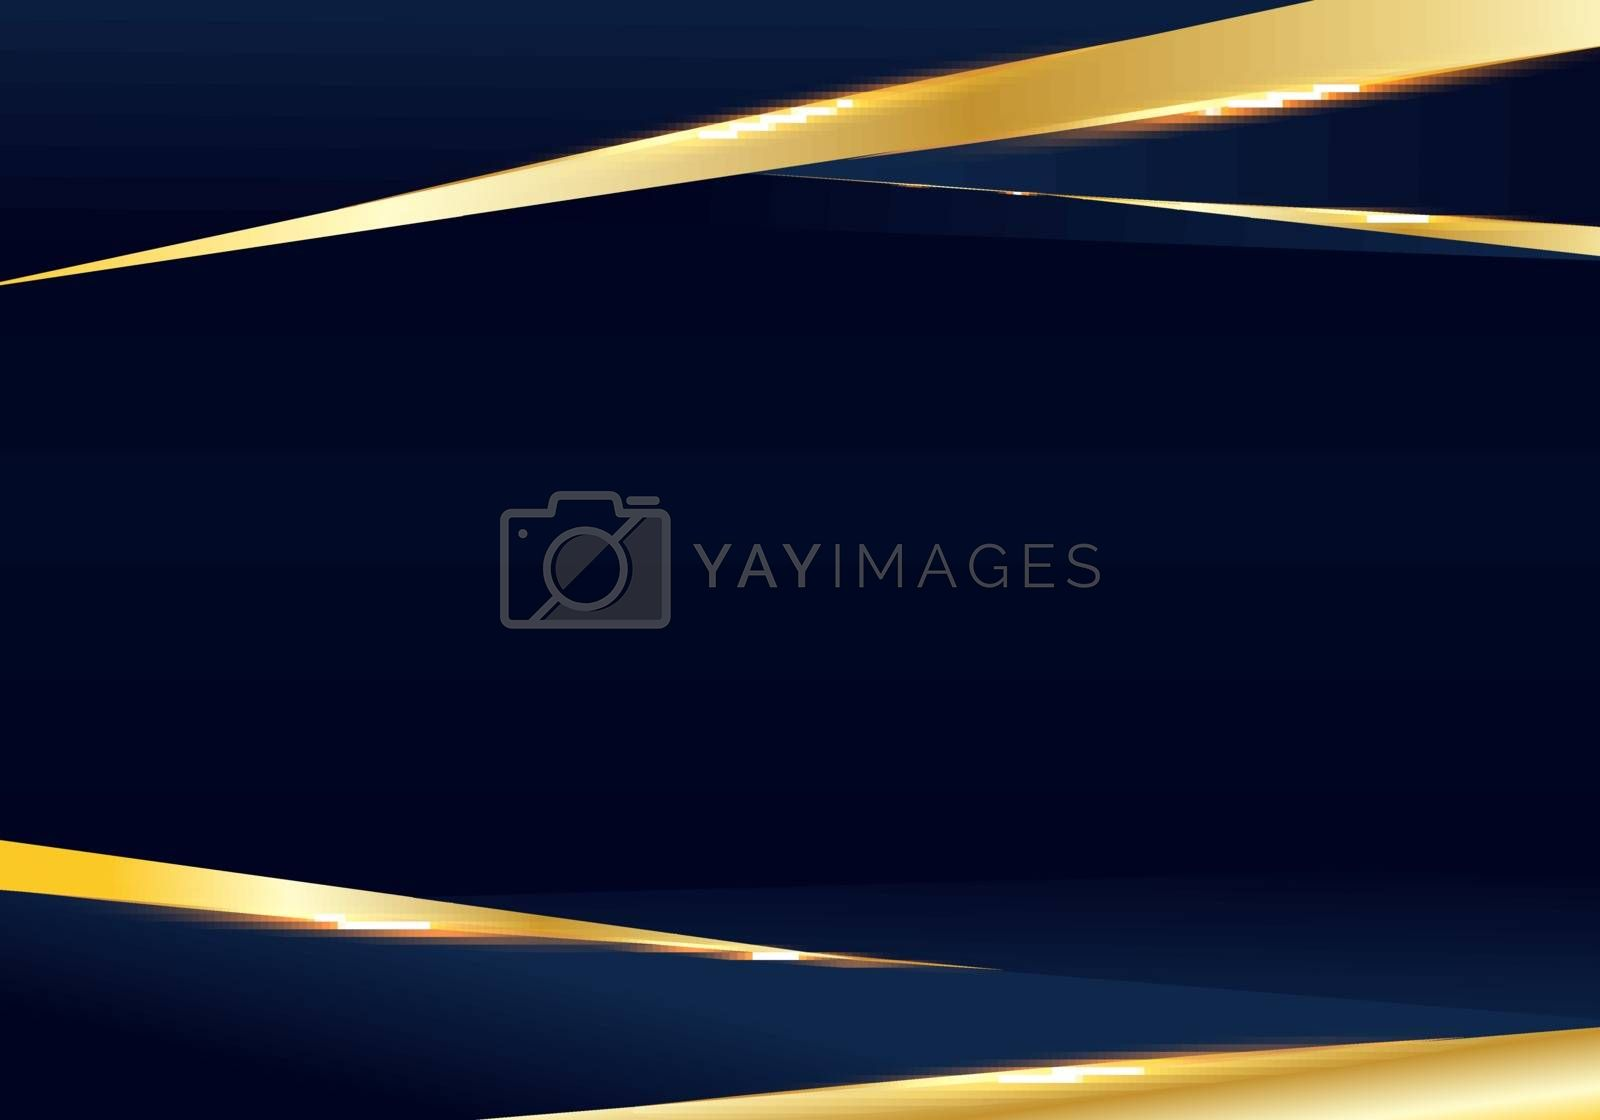 Abstract template dark blue and golden luxury premium background with luxury triangles pattern and gold lighting lines. Vector illustration